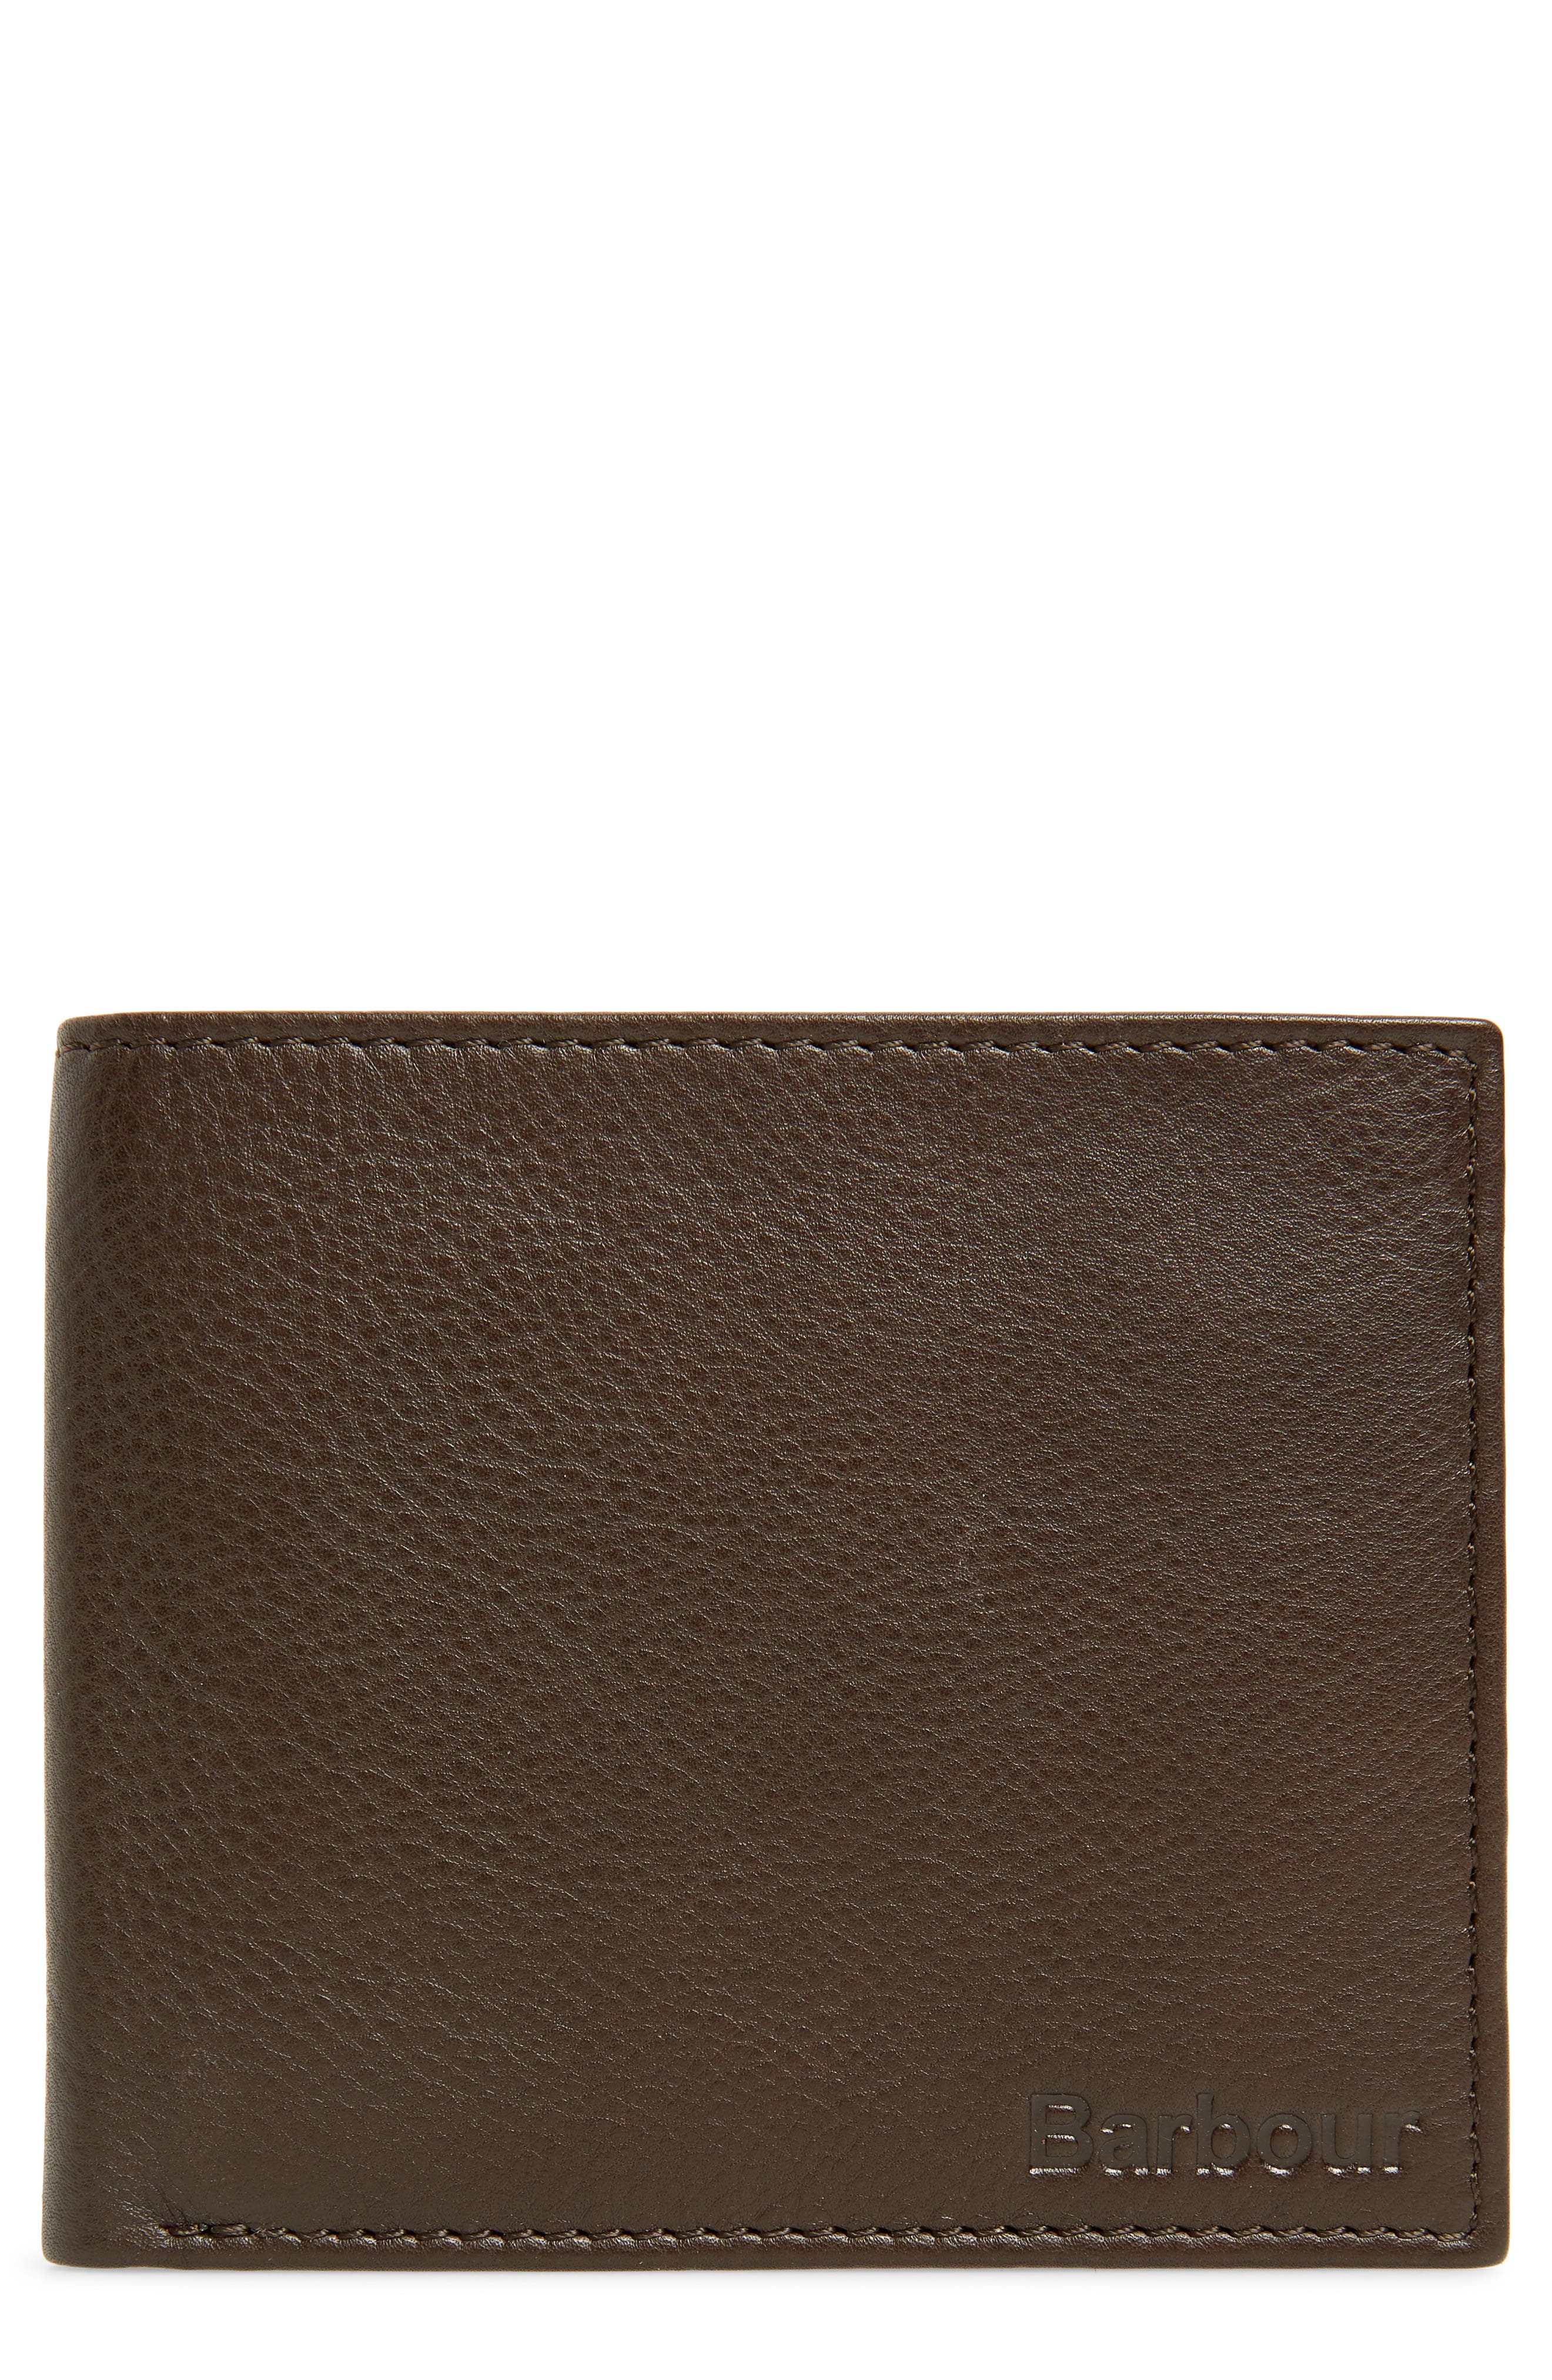 Leather Wallet,                         Main,                         color, 200